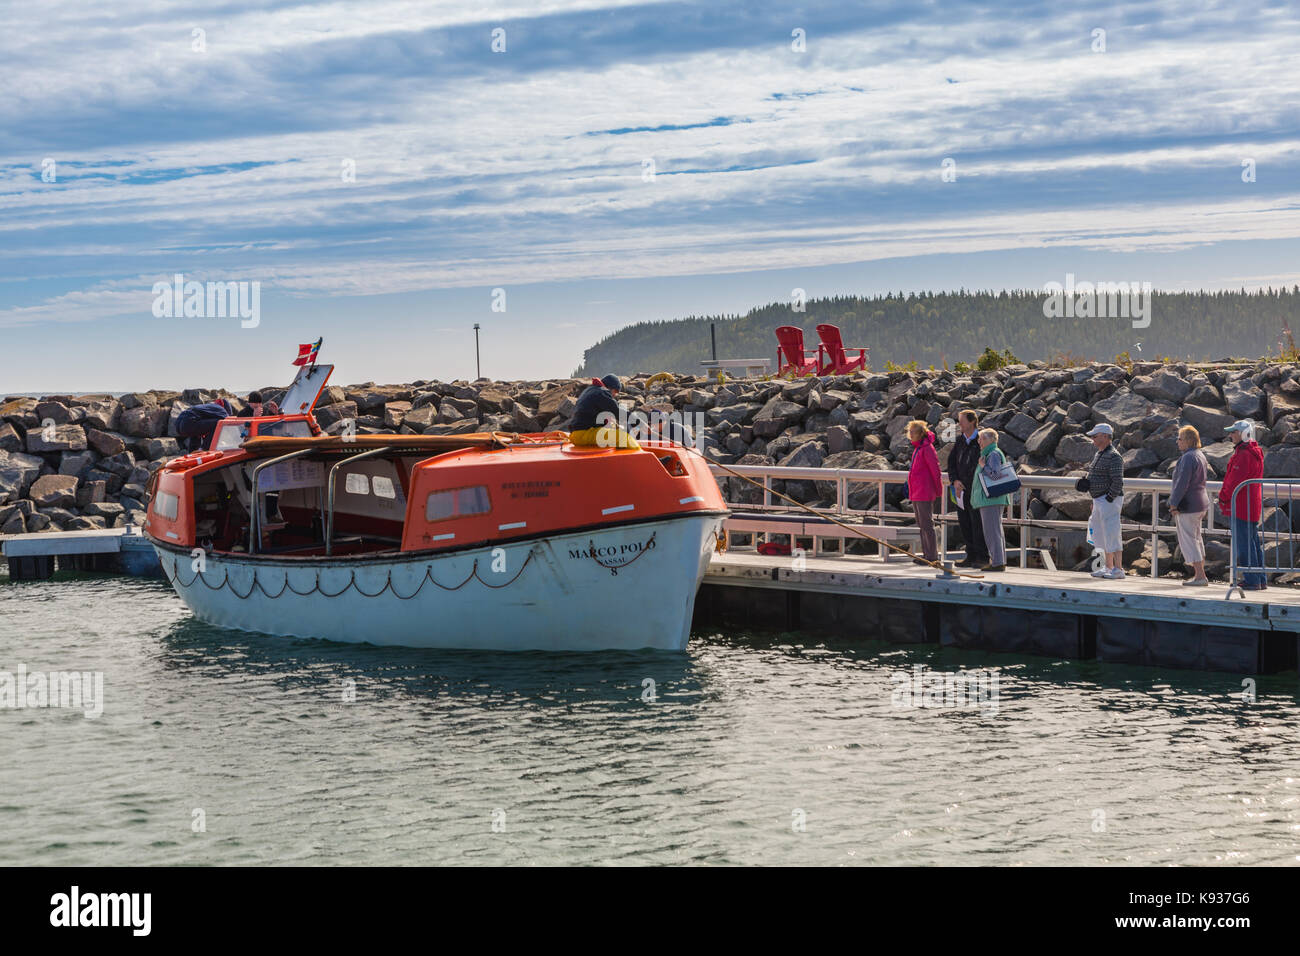 MV Marco Polo's tender boat at Havre-Saint-Pierre, Canada - Stock Image